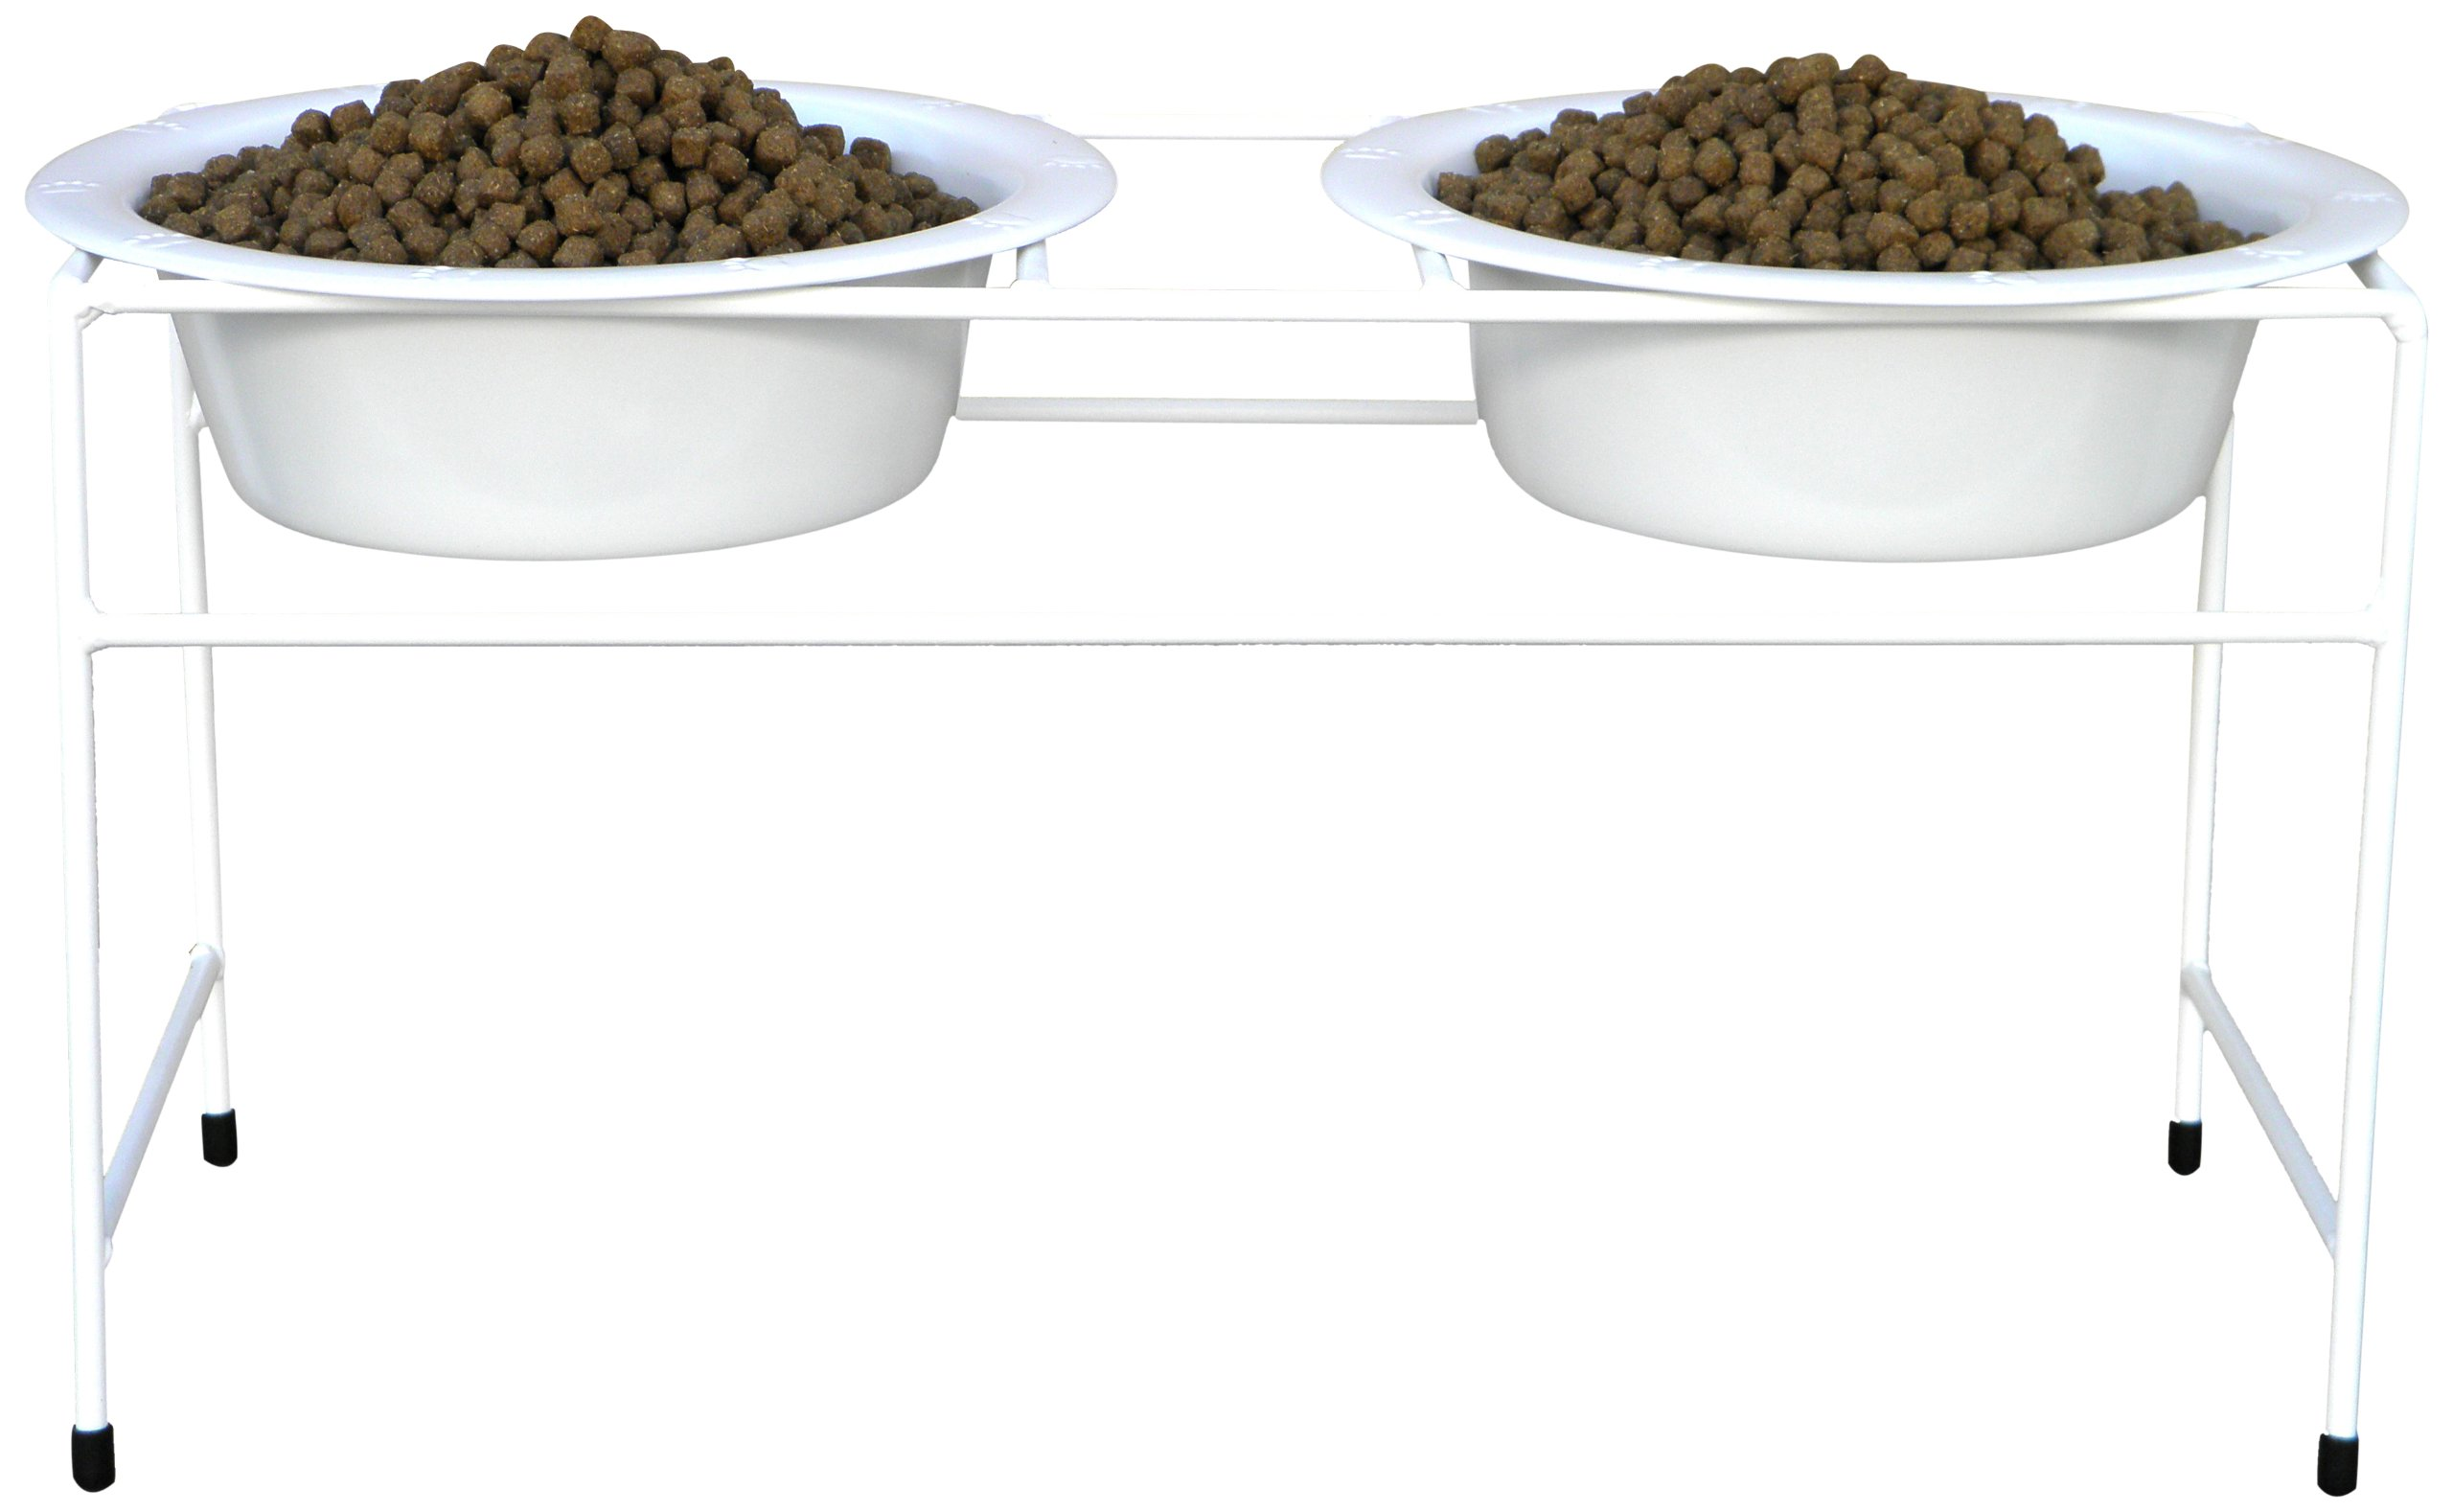 Platinum Pets Double Diner Feeder with Stainless Steel Dog Bowls, 50 oz, White